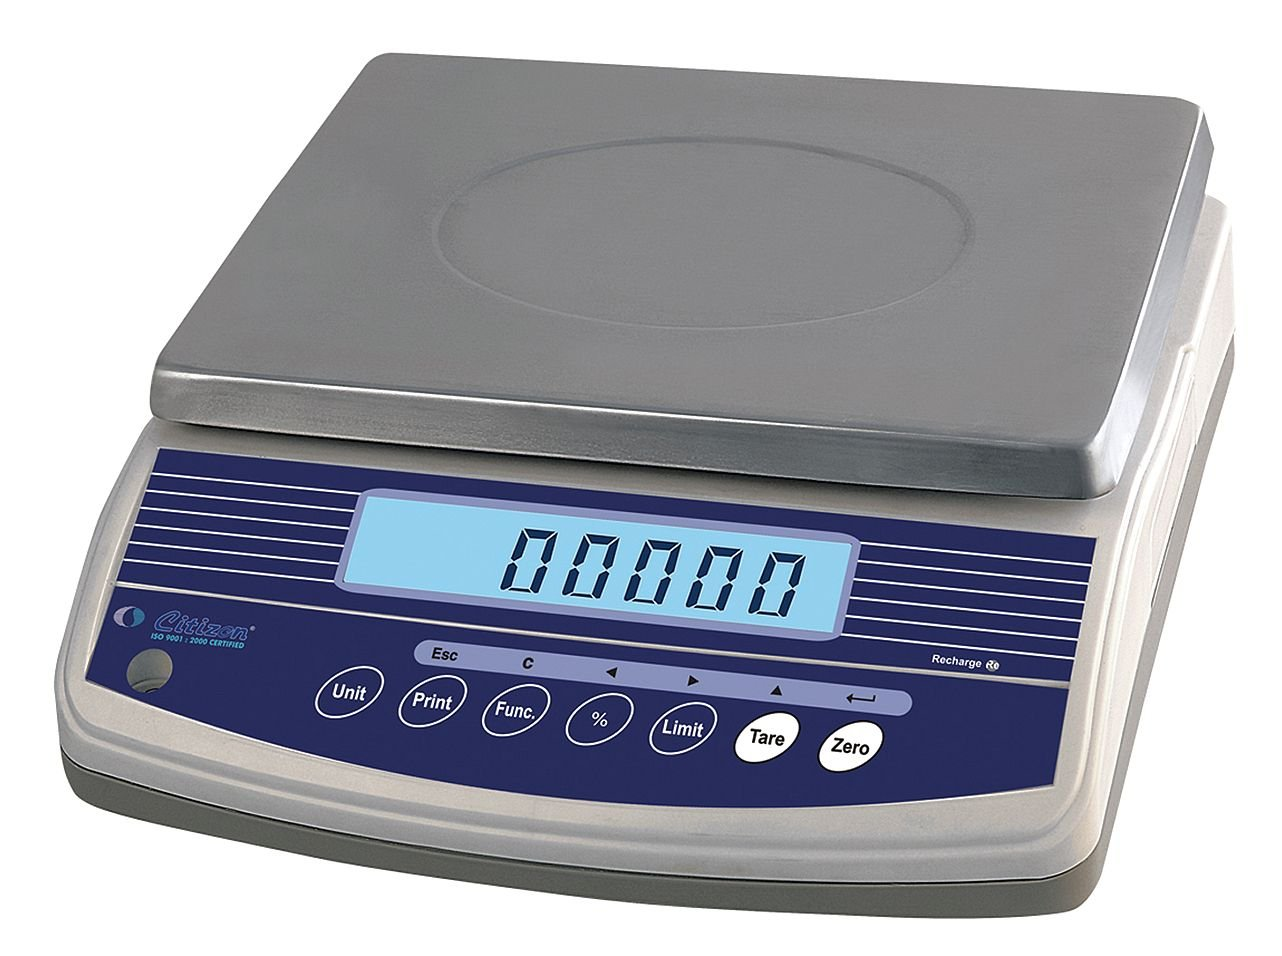 CITIZEN 12R987 Weighing Scale, 6000g/6kg/13lb